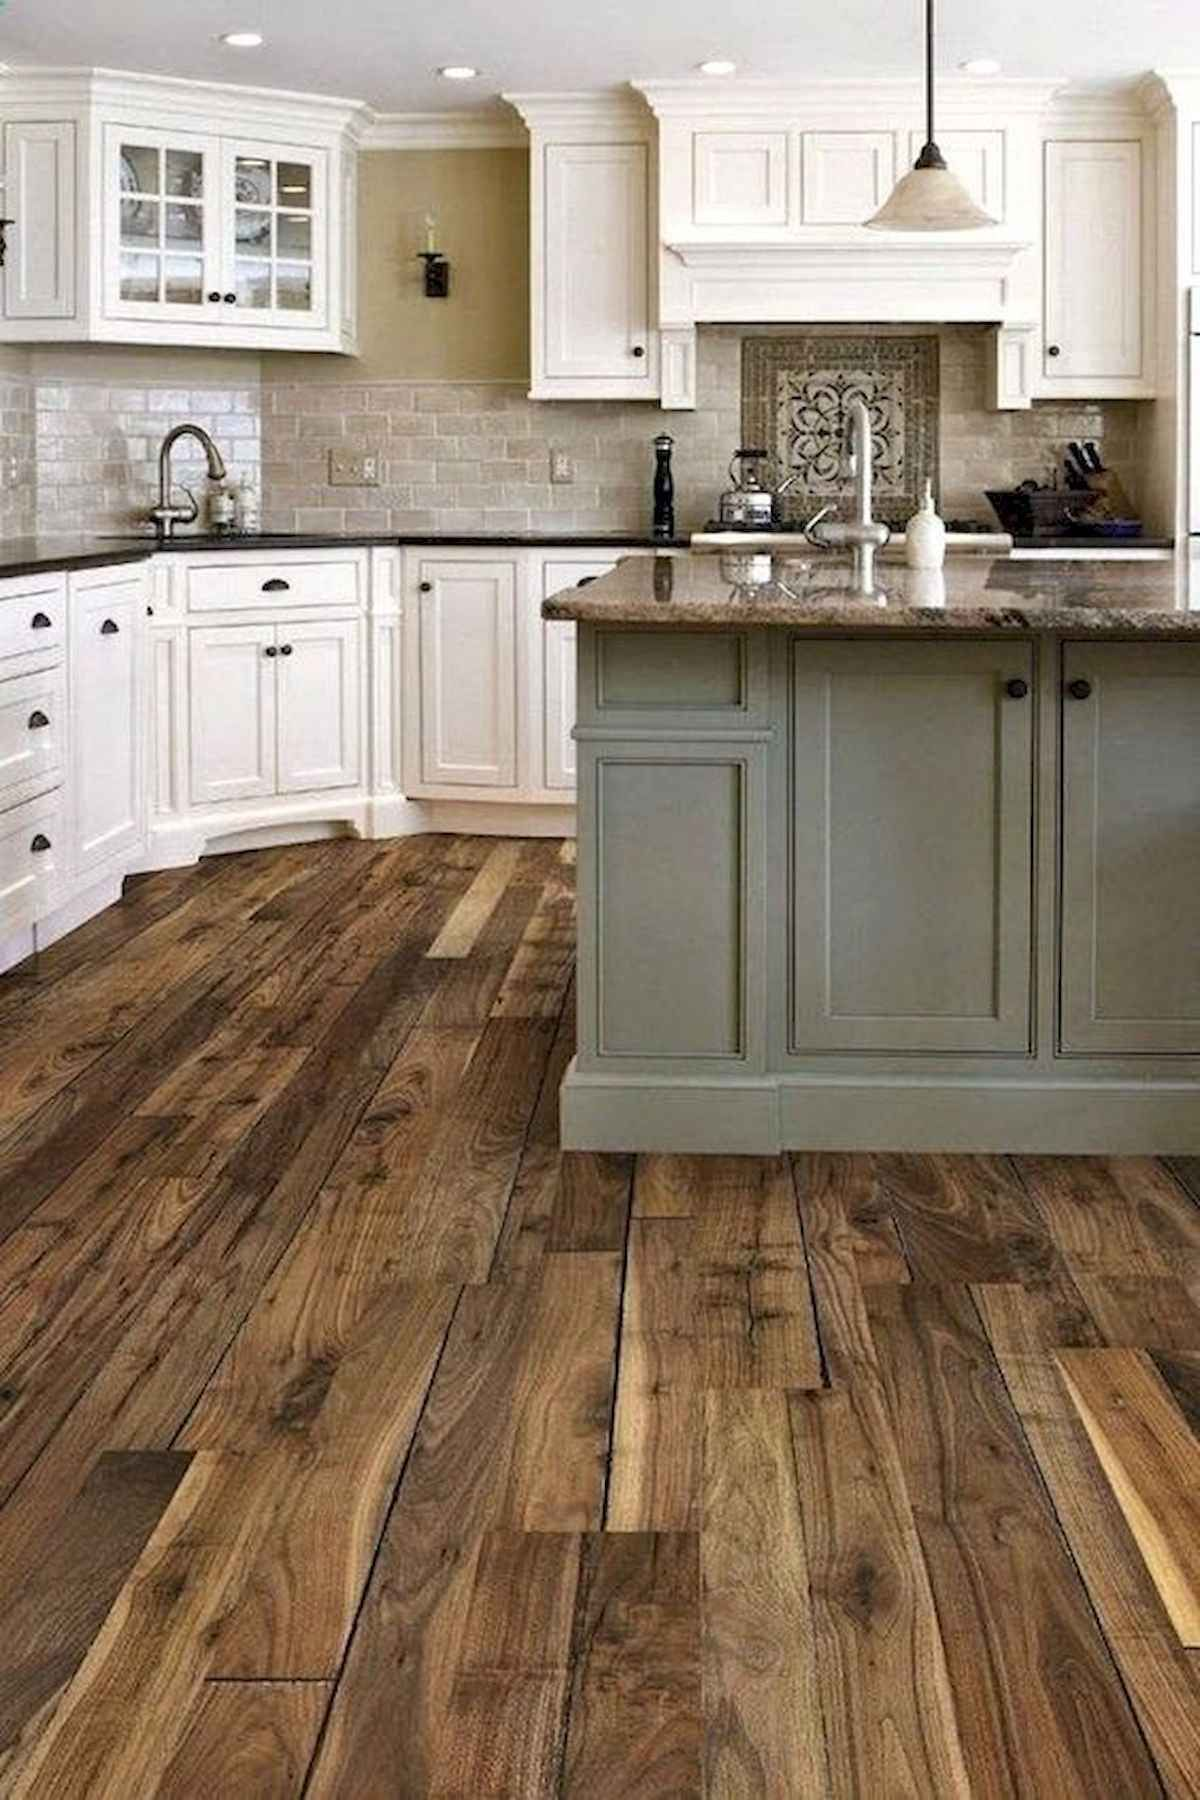 40 Awesome Craftsman Style Kitchen Design Ideas 23 Modern Farmhouse Kitchens Kitchen Style New Kitchen Cabinets